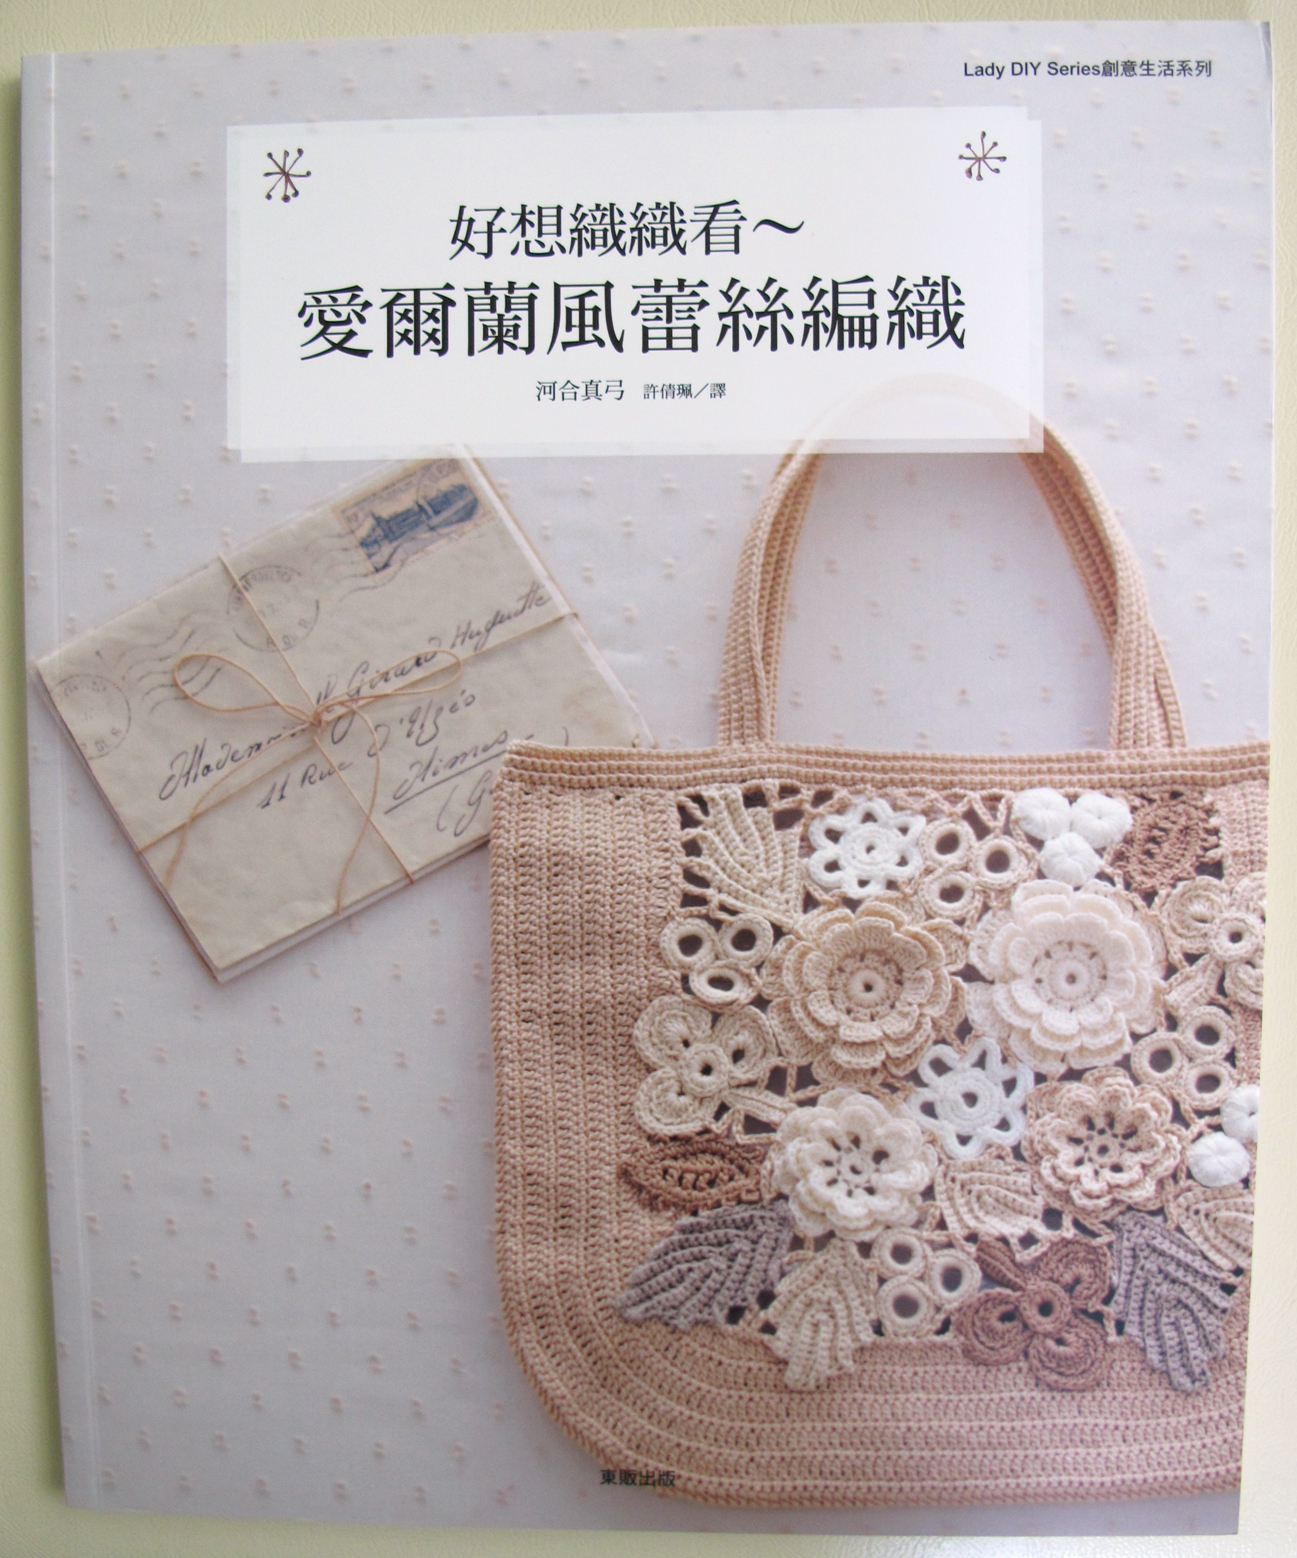 Crochet Pattern Books : ... .com: Japanese Crochet Book: I want to try Irish Crochet Lace Book